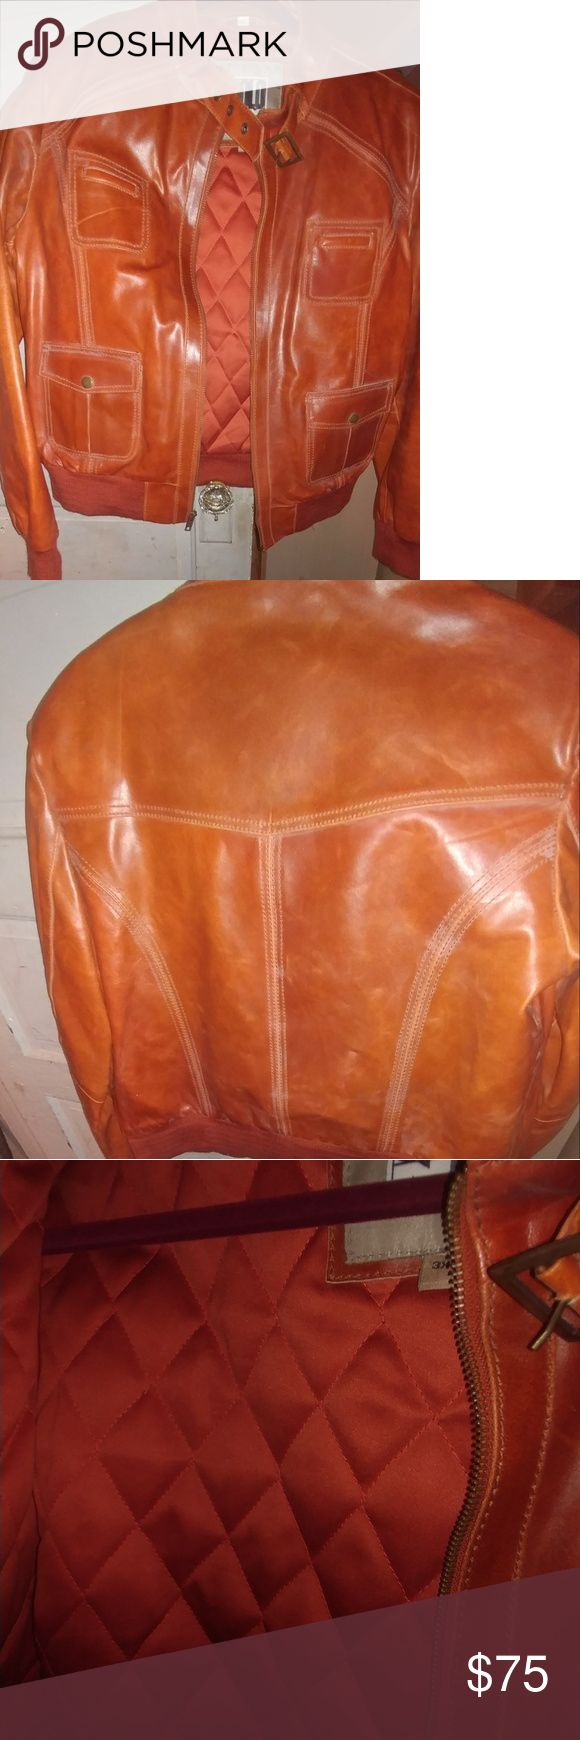 Women's Cognac Leather Bomber Jacket Size 3XL Genuine Leather Hipster Jacket Quilted Liner 4 front pockets (2 top 2 bottom) Size 3XL...cut small  Color burnt orange Gently worn...no tears,stains or discoloration solo Jackets & Coats